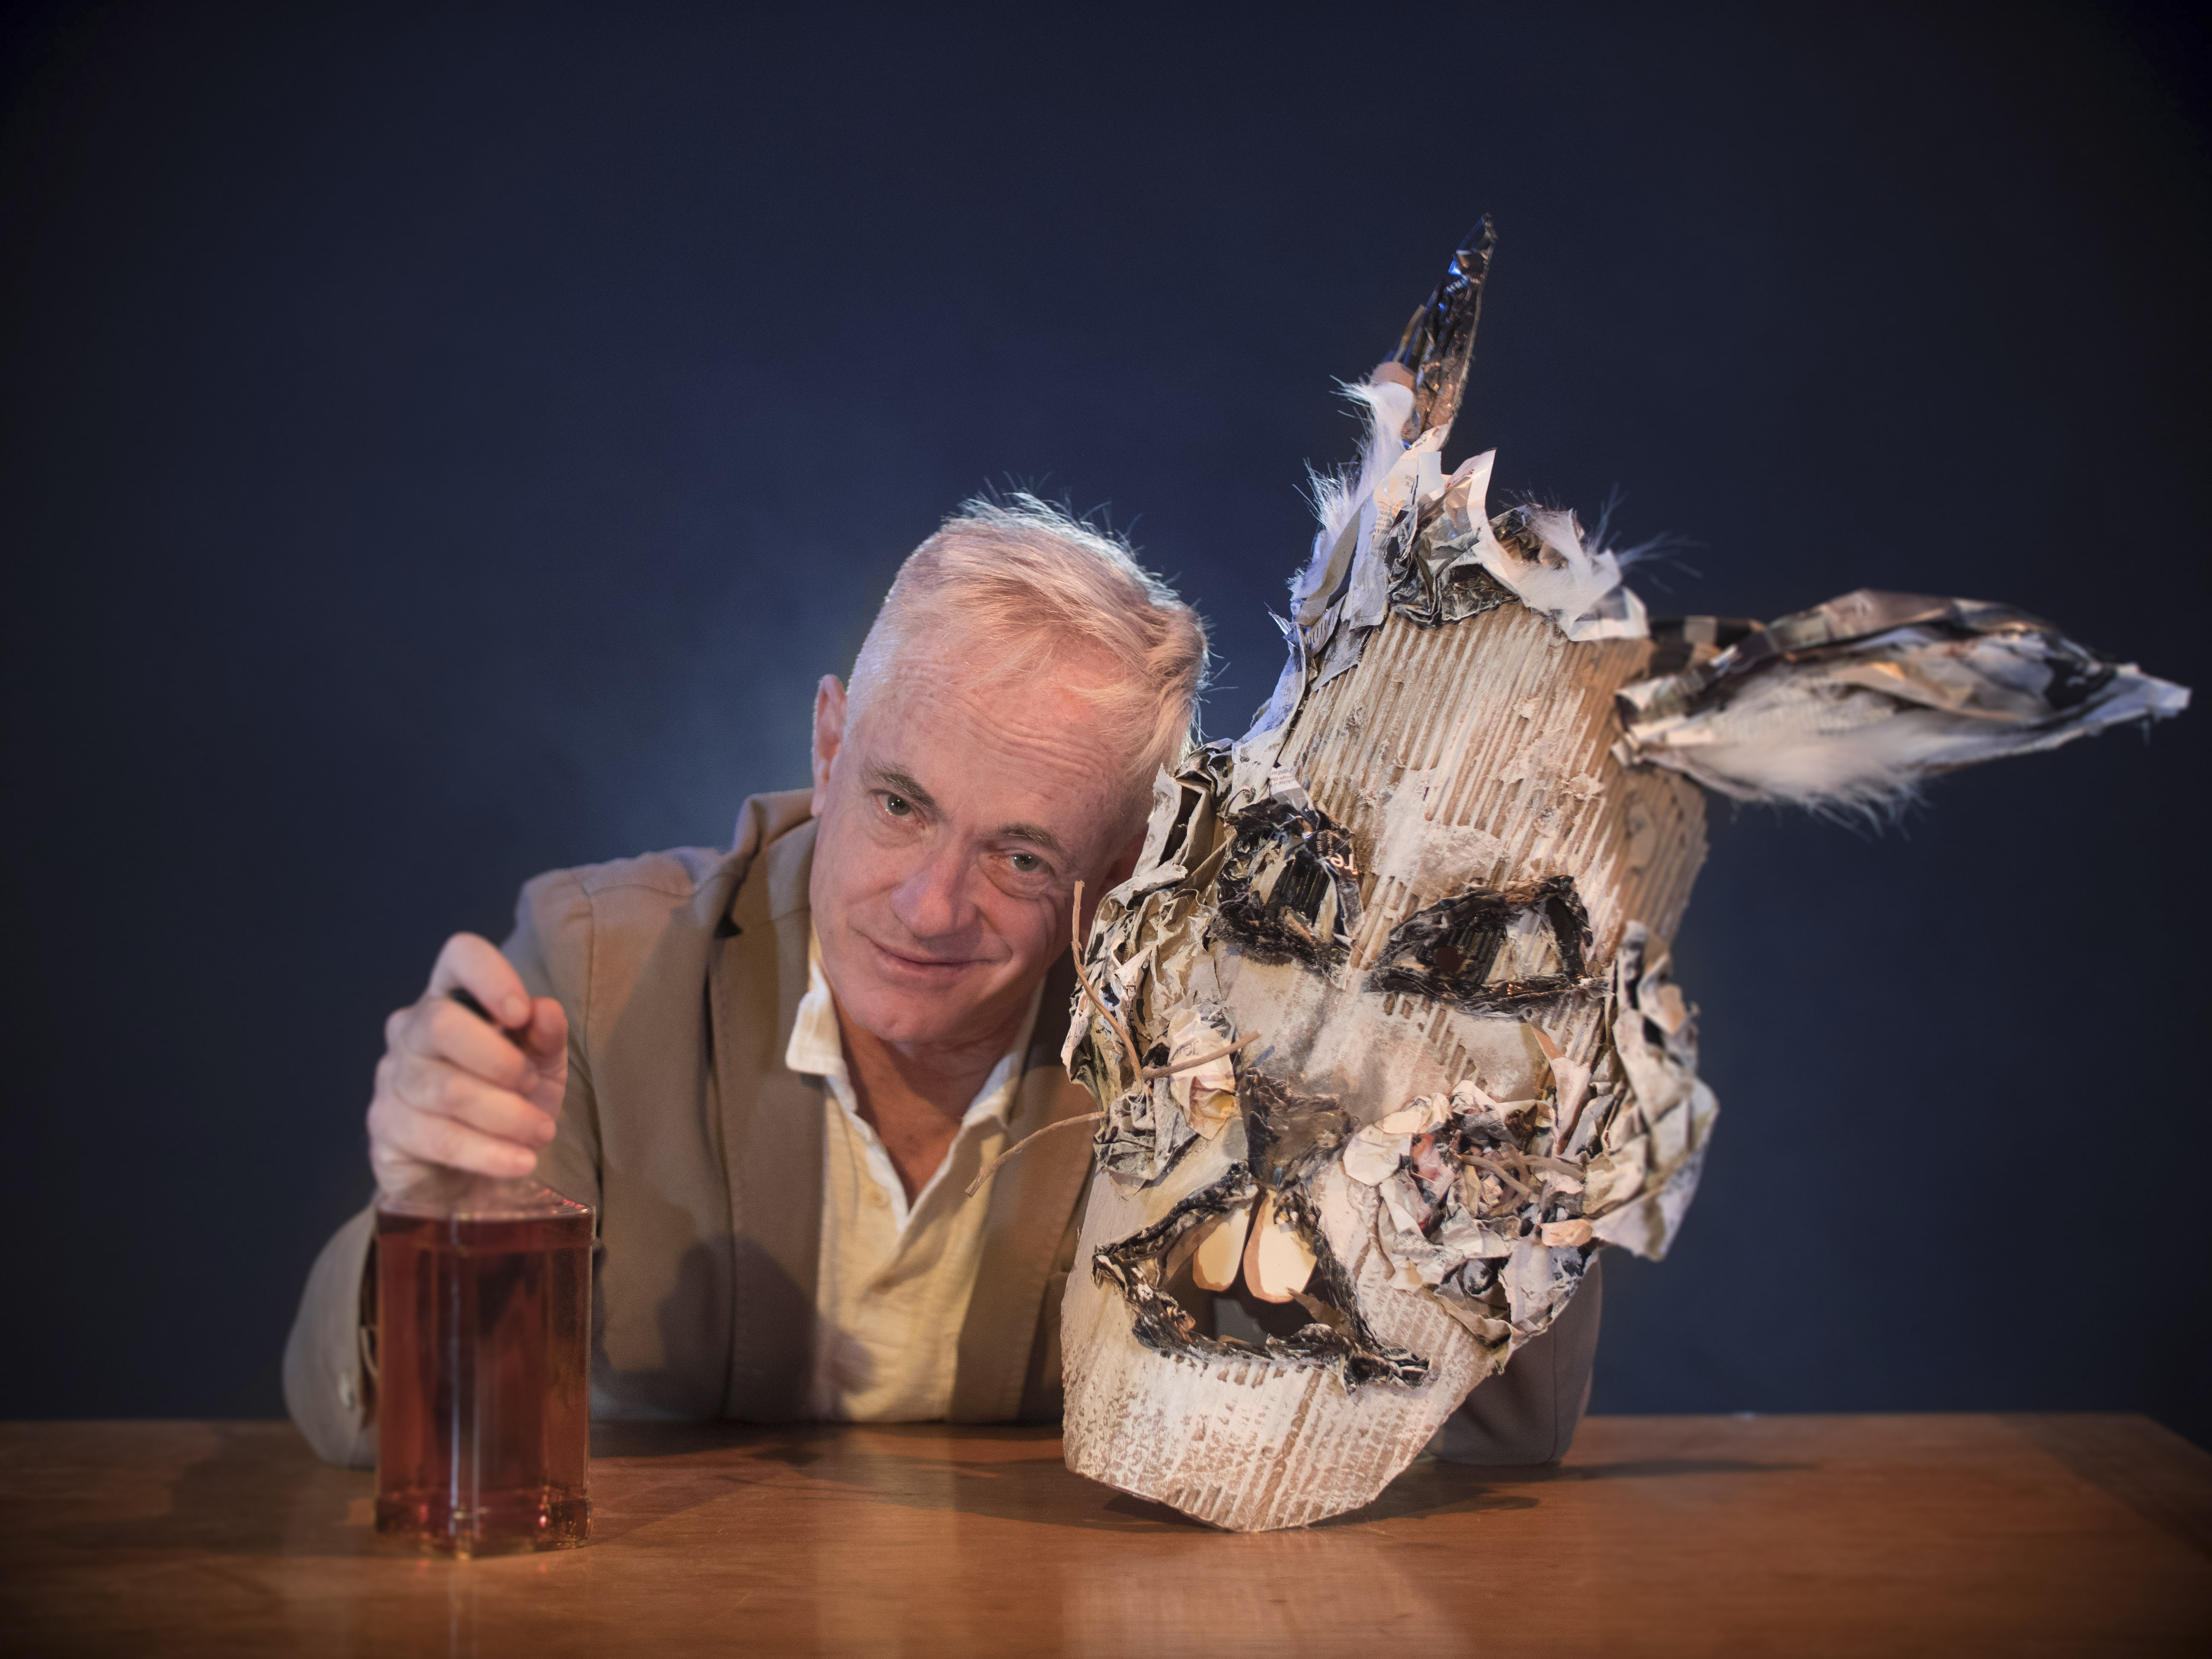 """Danny Scheie as Ghost in """"Imaginary Comforts, or The Story of the Ghost of the Dead Rabbit"""" (Photo/Berkeley Repertory Theatre-Joel Dockendorf)"""